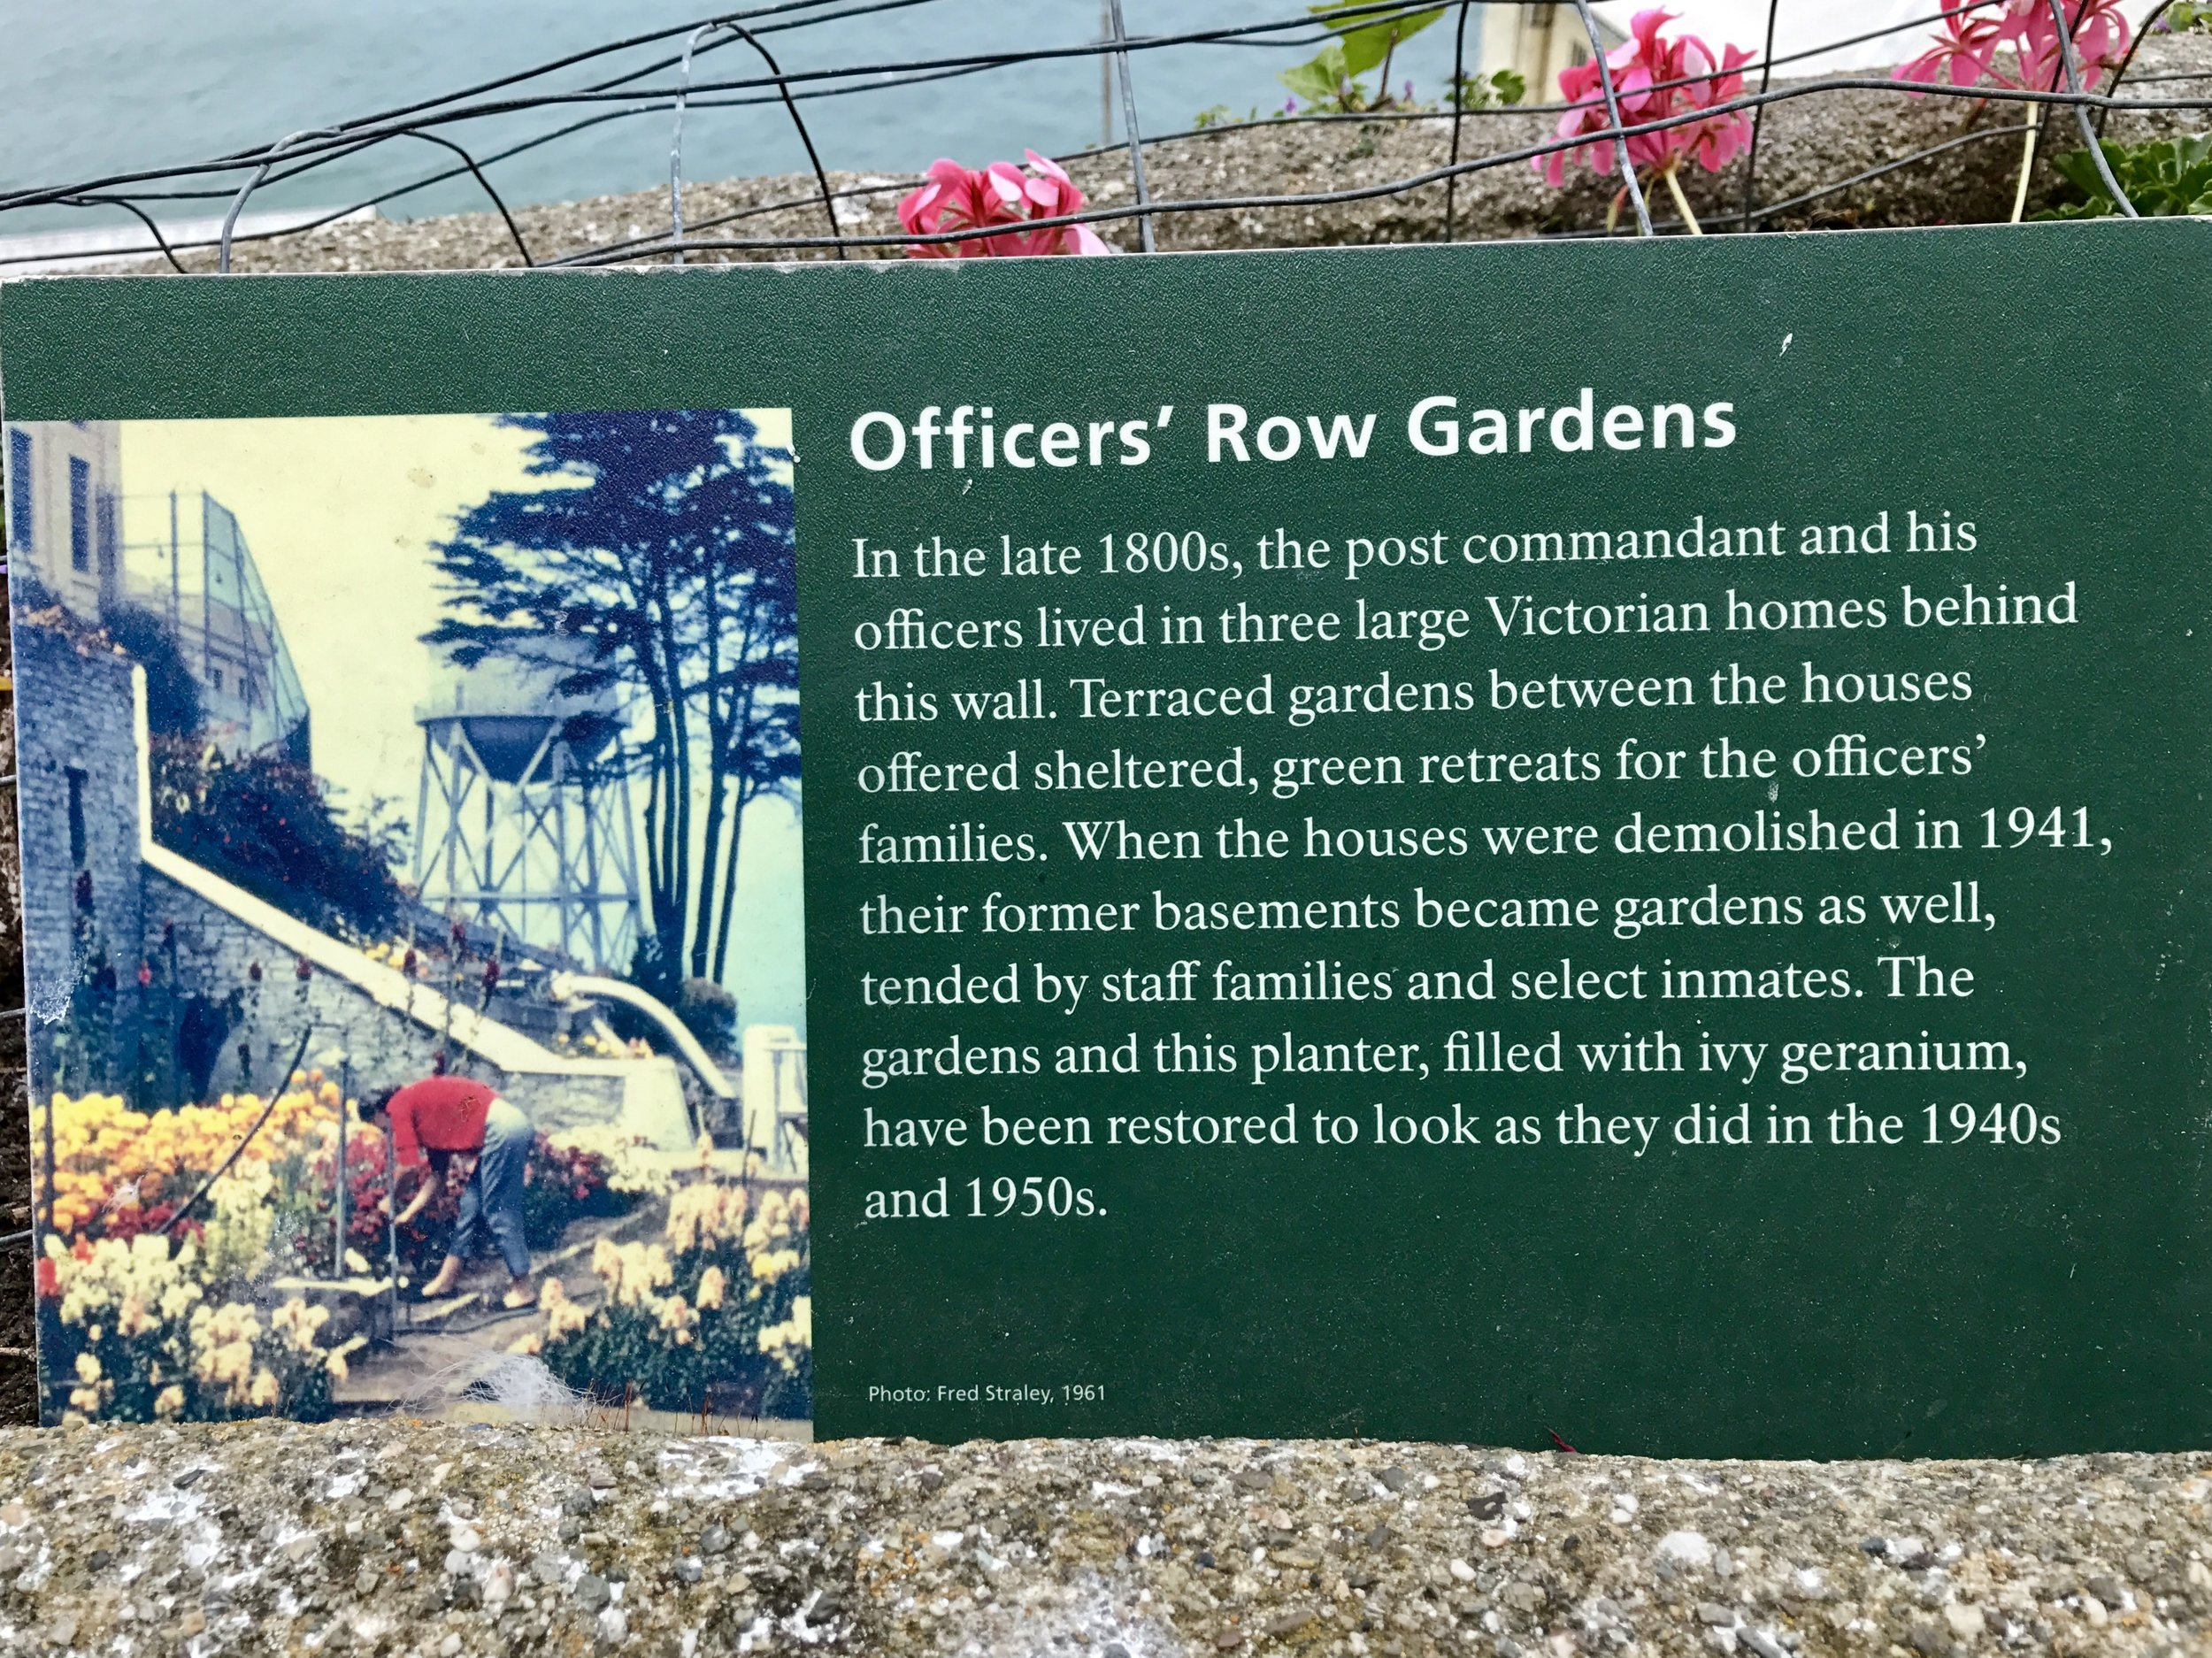 Officers' Row Gardens